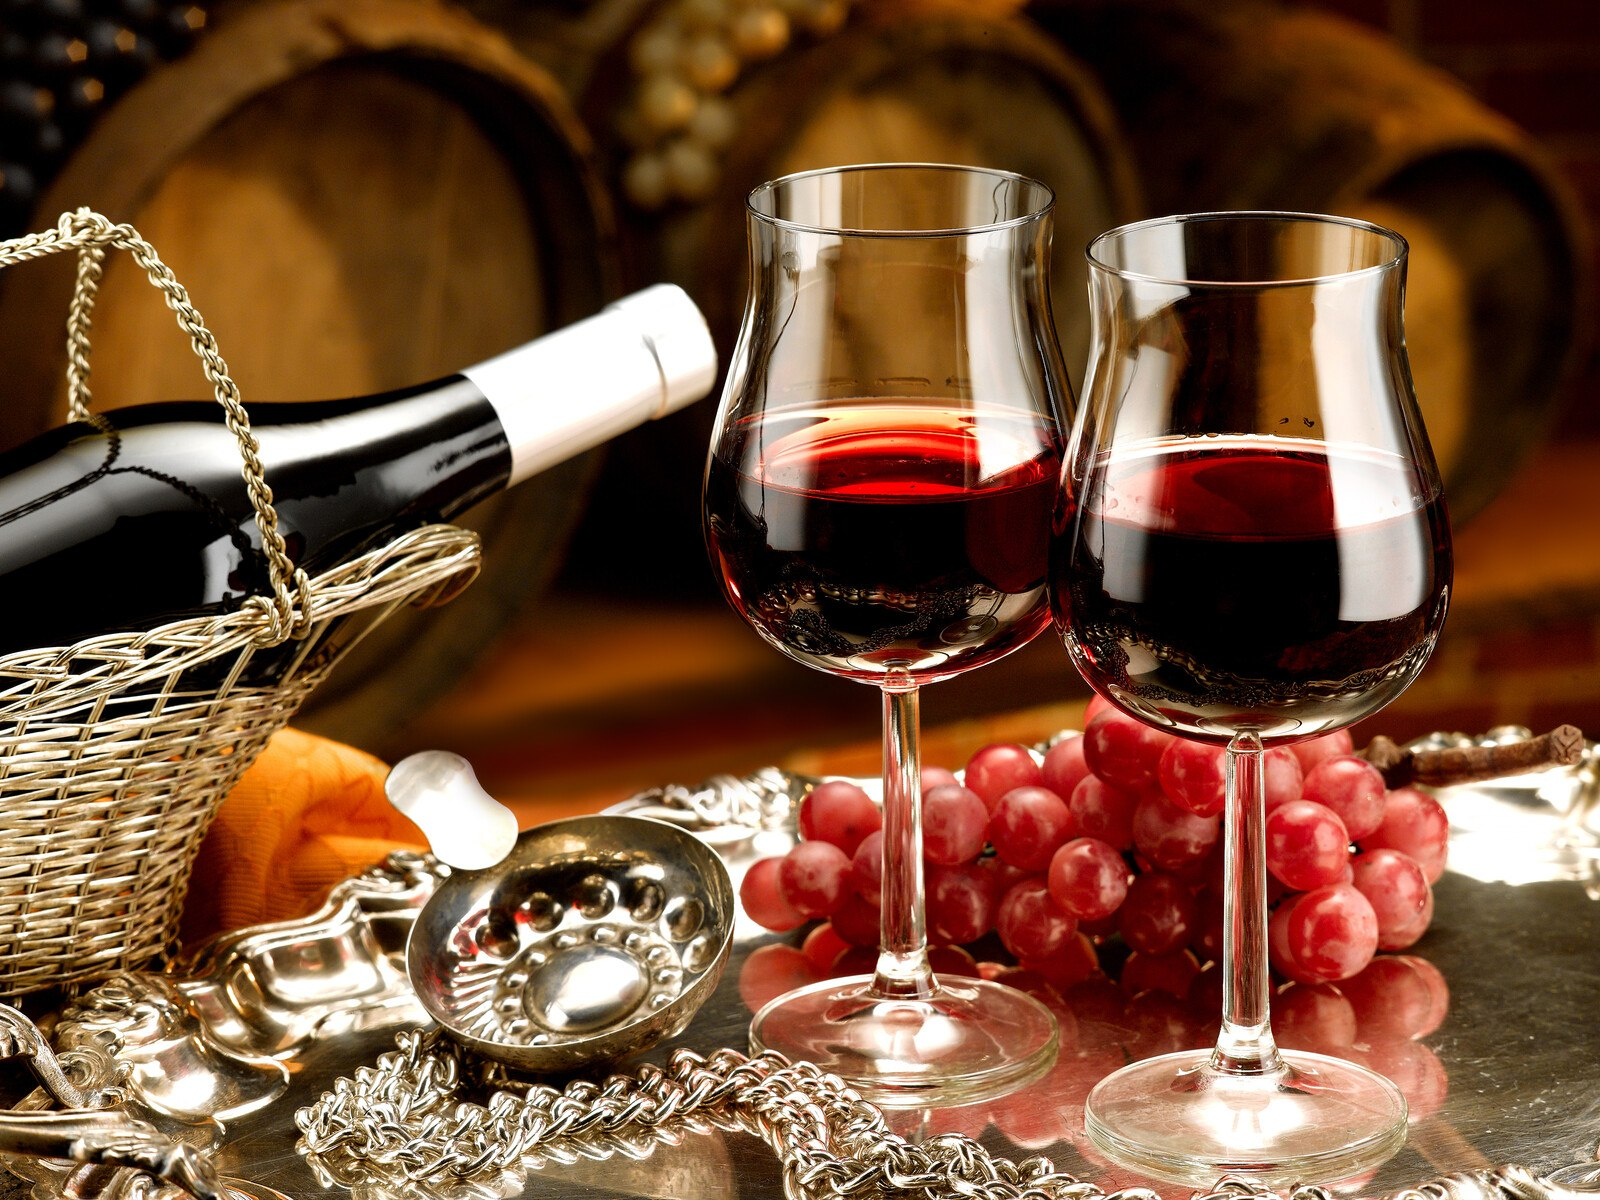 two glasses of red wine surrounded by a wine bottle lying on a wicker basket , a bunch of grapes and silverware